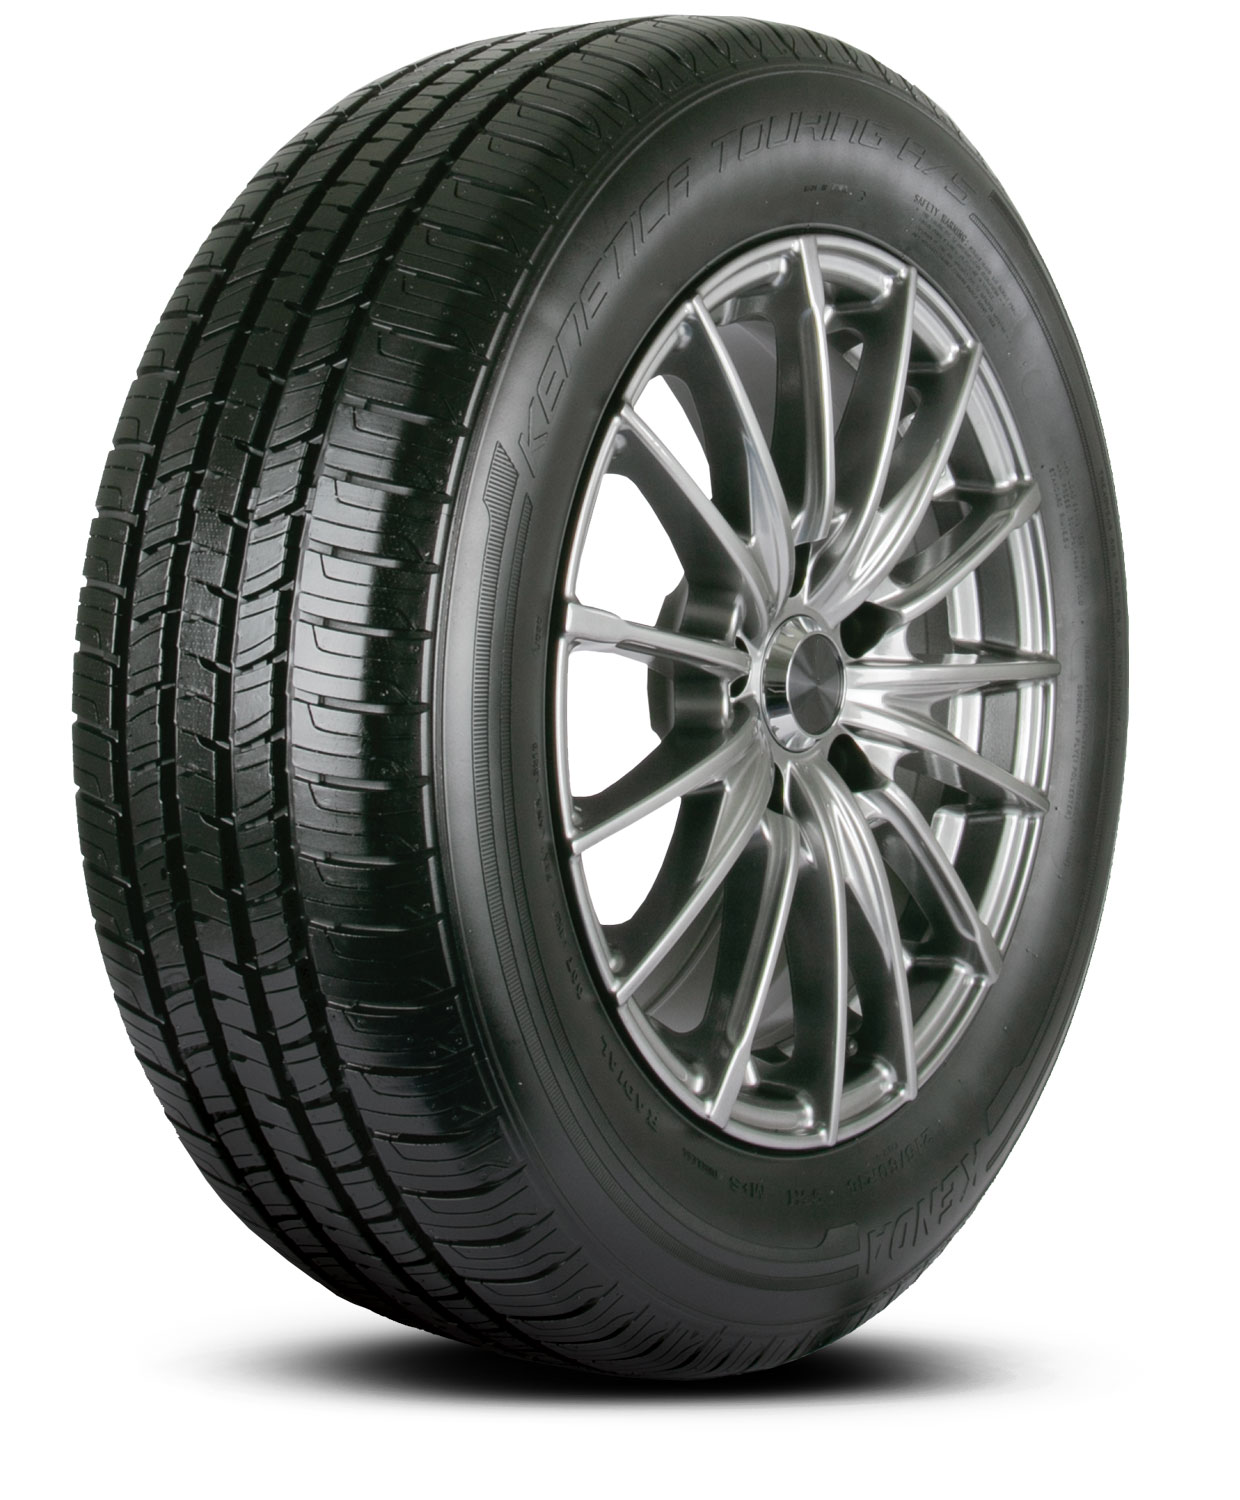 SIZE: 2157015,   PLY: P,   UTQG: 500,   MILEAGE: ,   SIDEWALL: BSW,   SPEED: H - 130